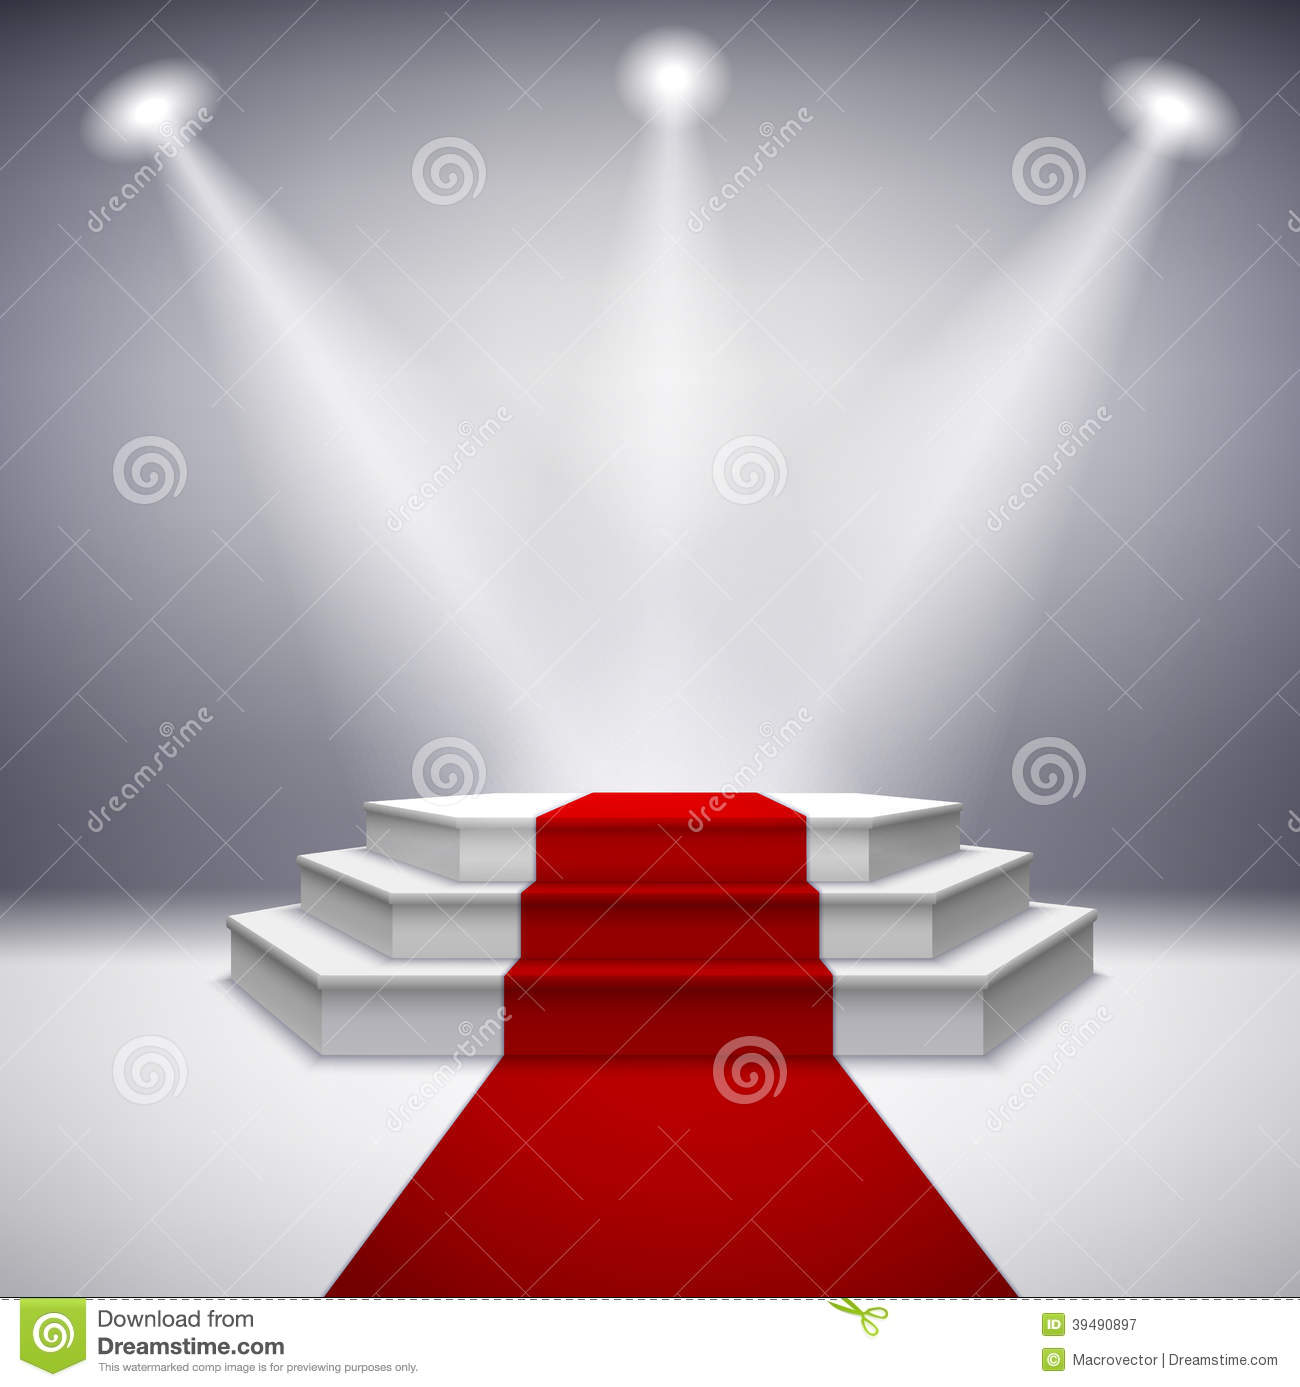 Illuminated Stage Podium With Red Carpet Stock Vector